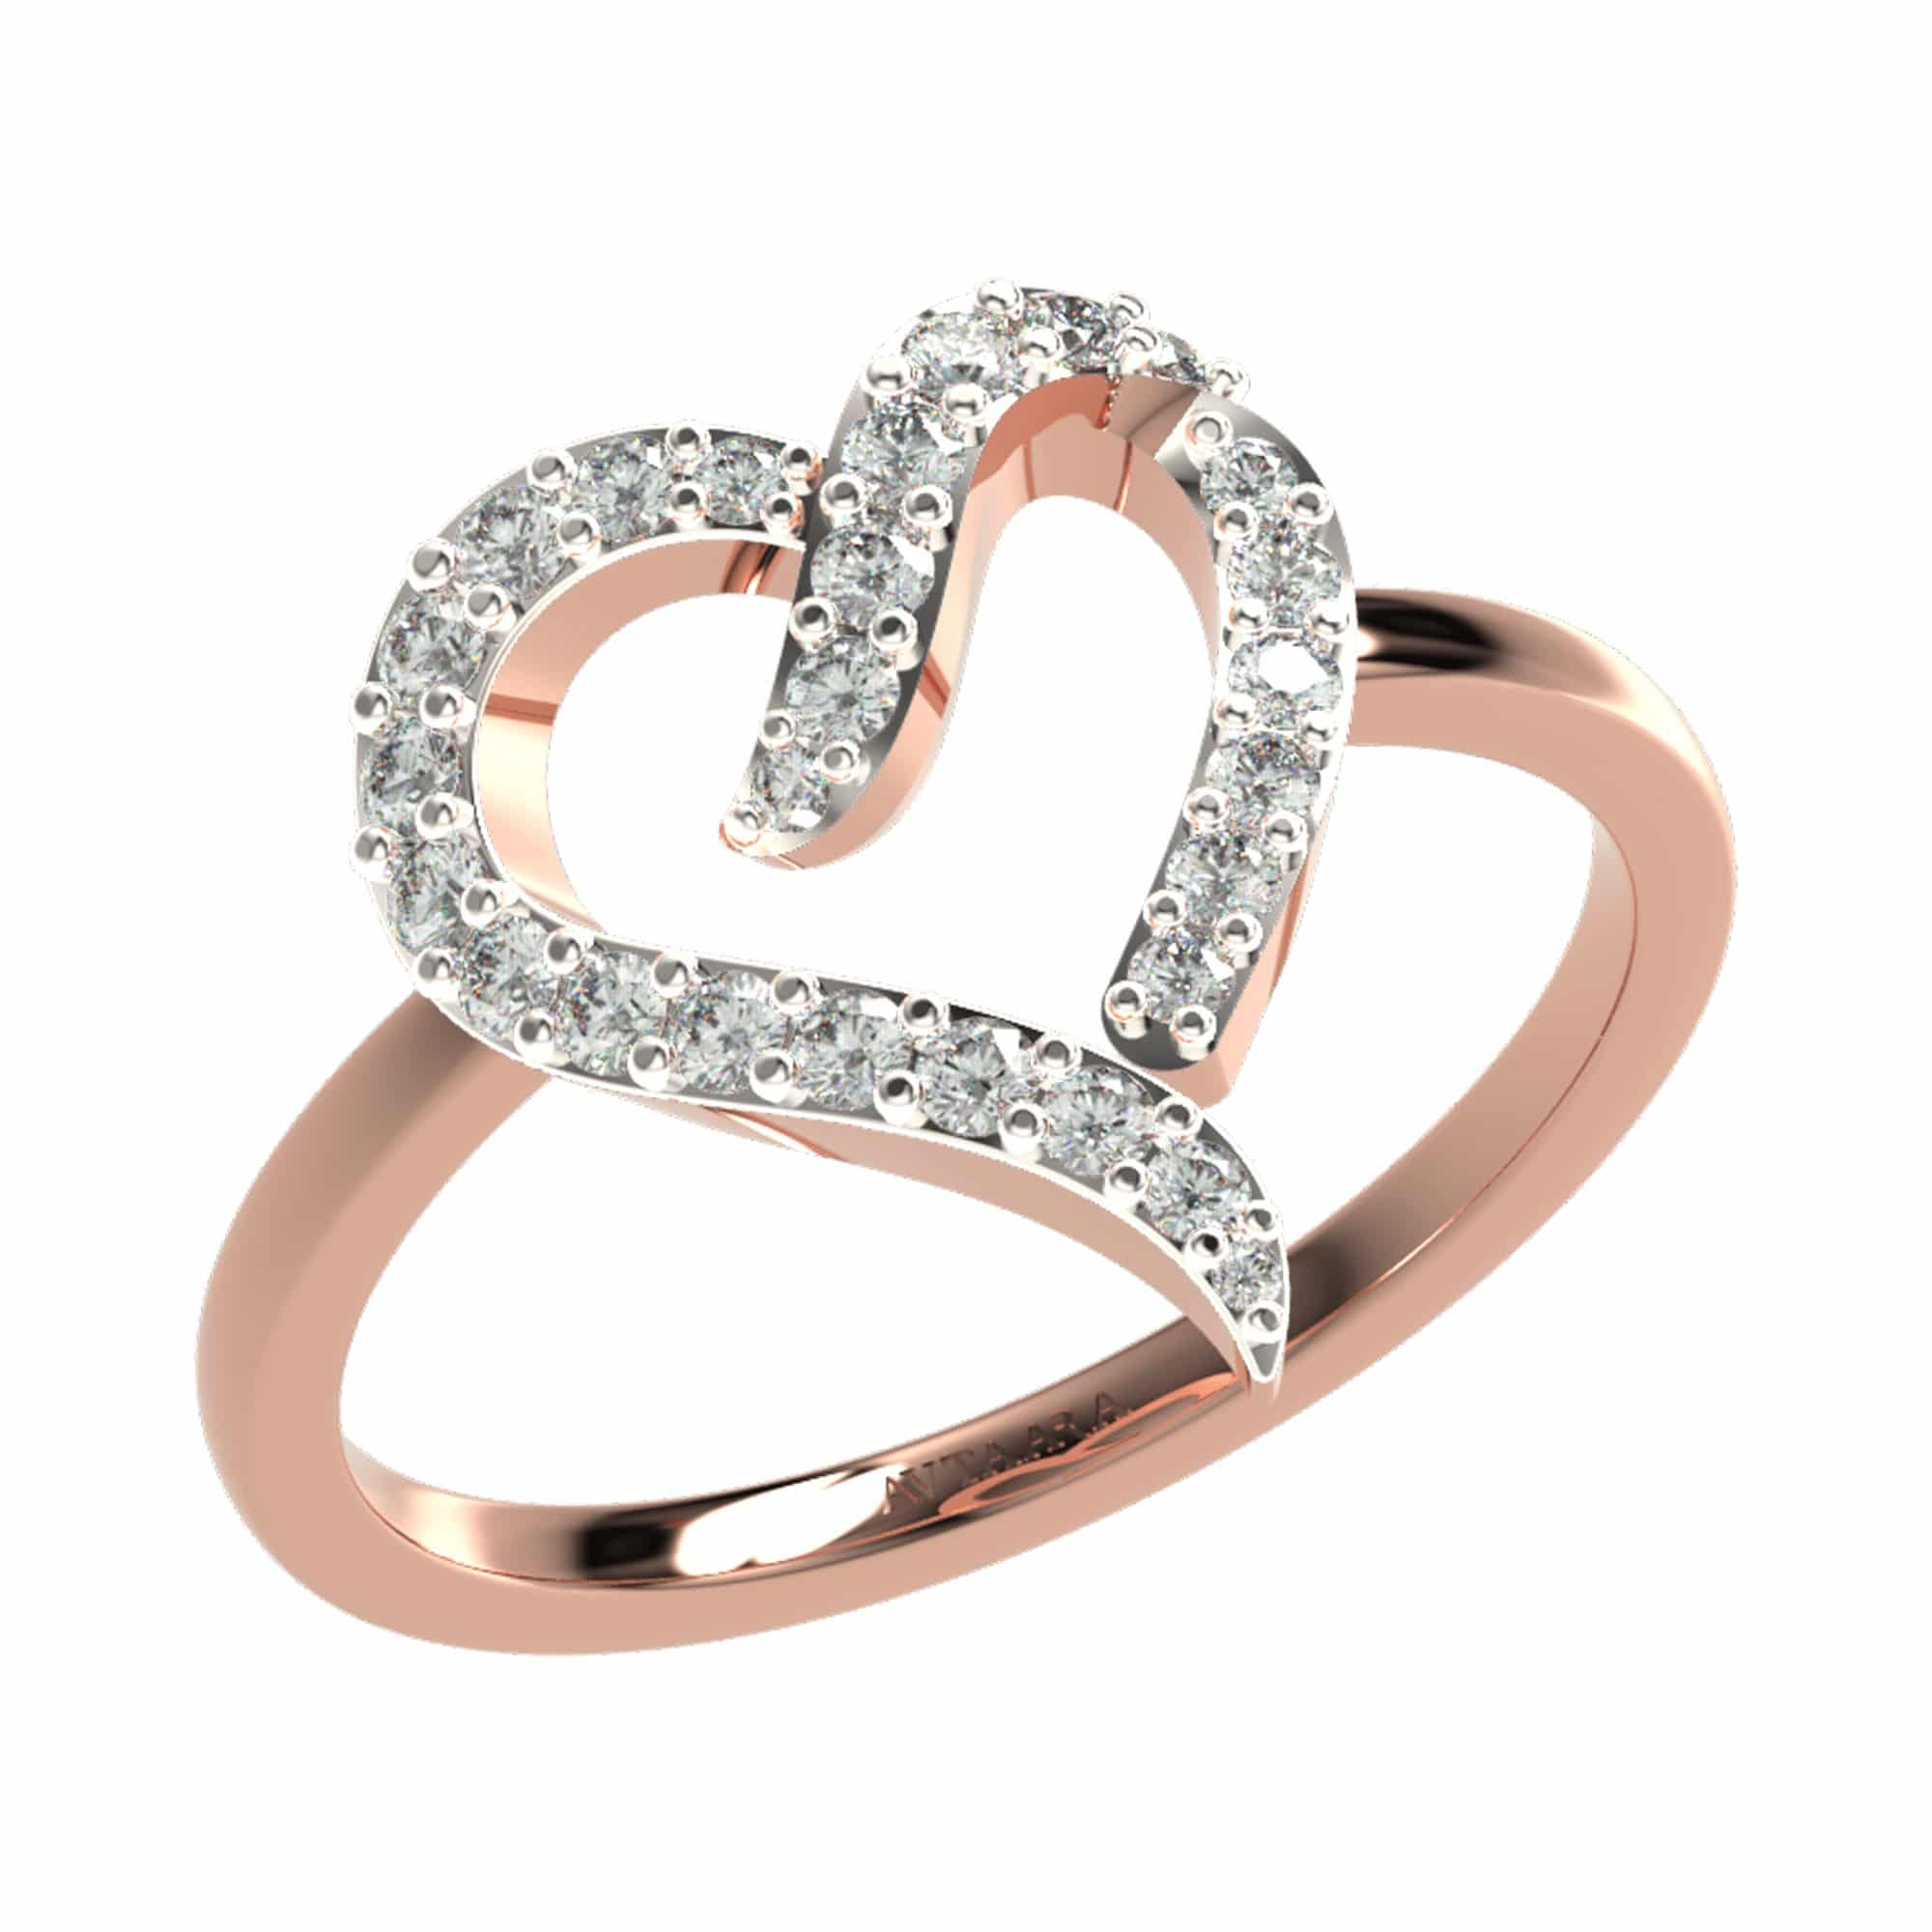 Special Heart Ring